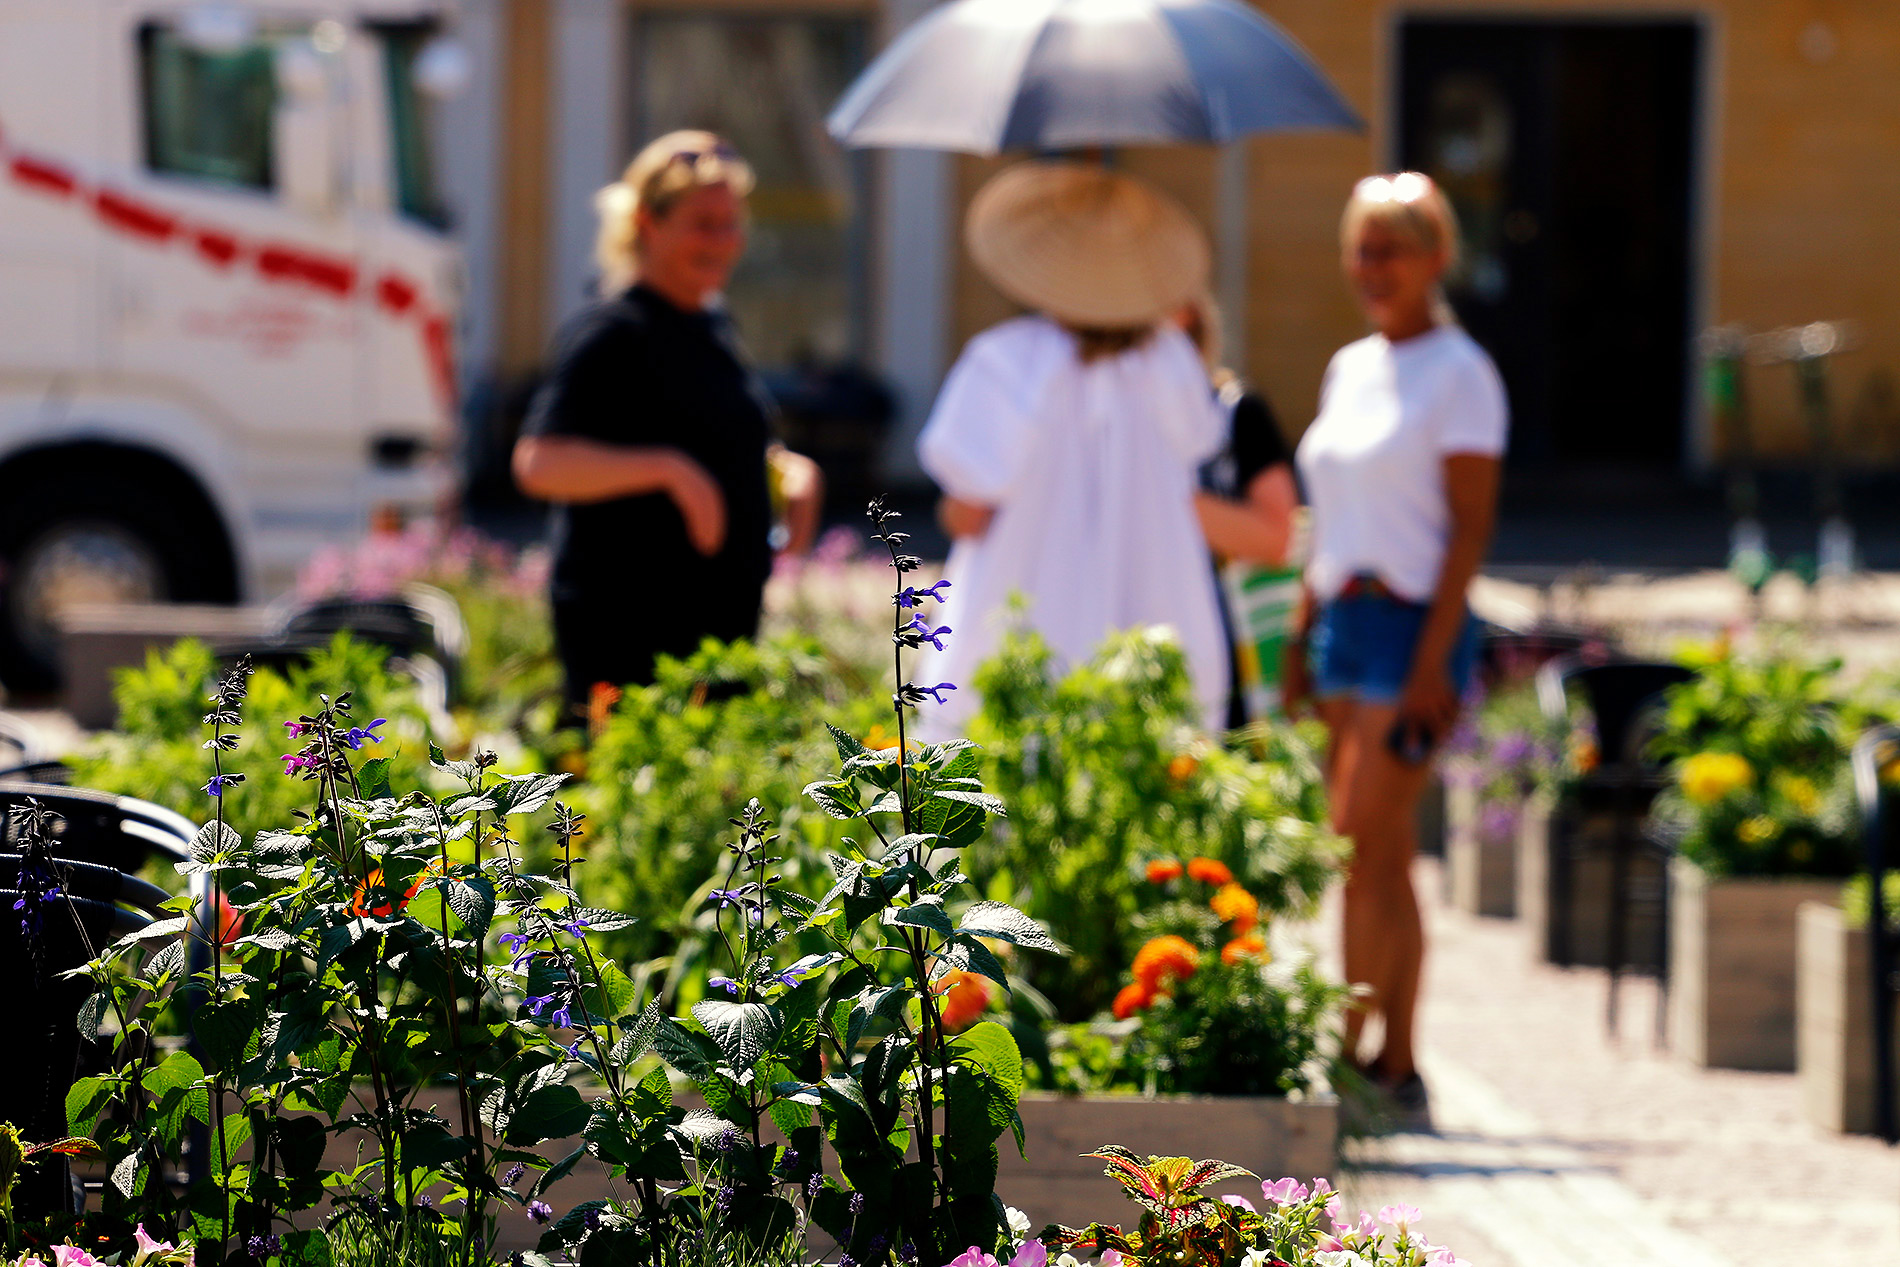 There are about 200 planter boxes filled with herbs and useful plants to separate the restaurant spaces from each other. Picture: Tony Öhberg/Finland Today